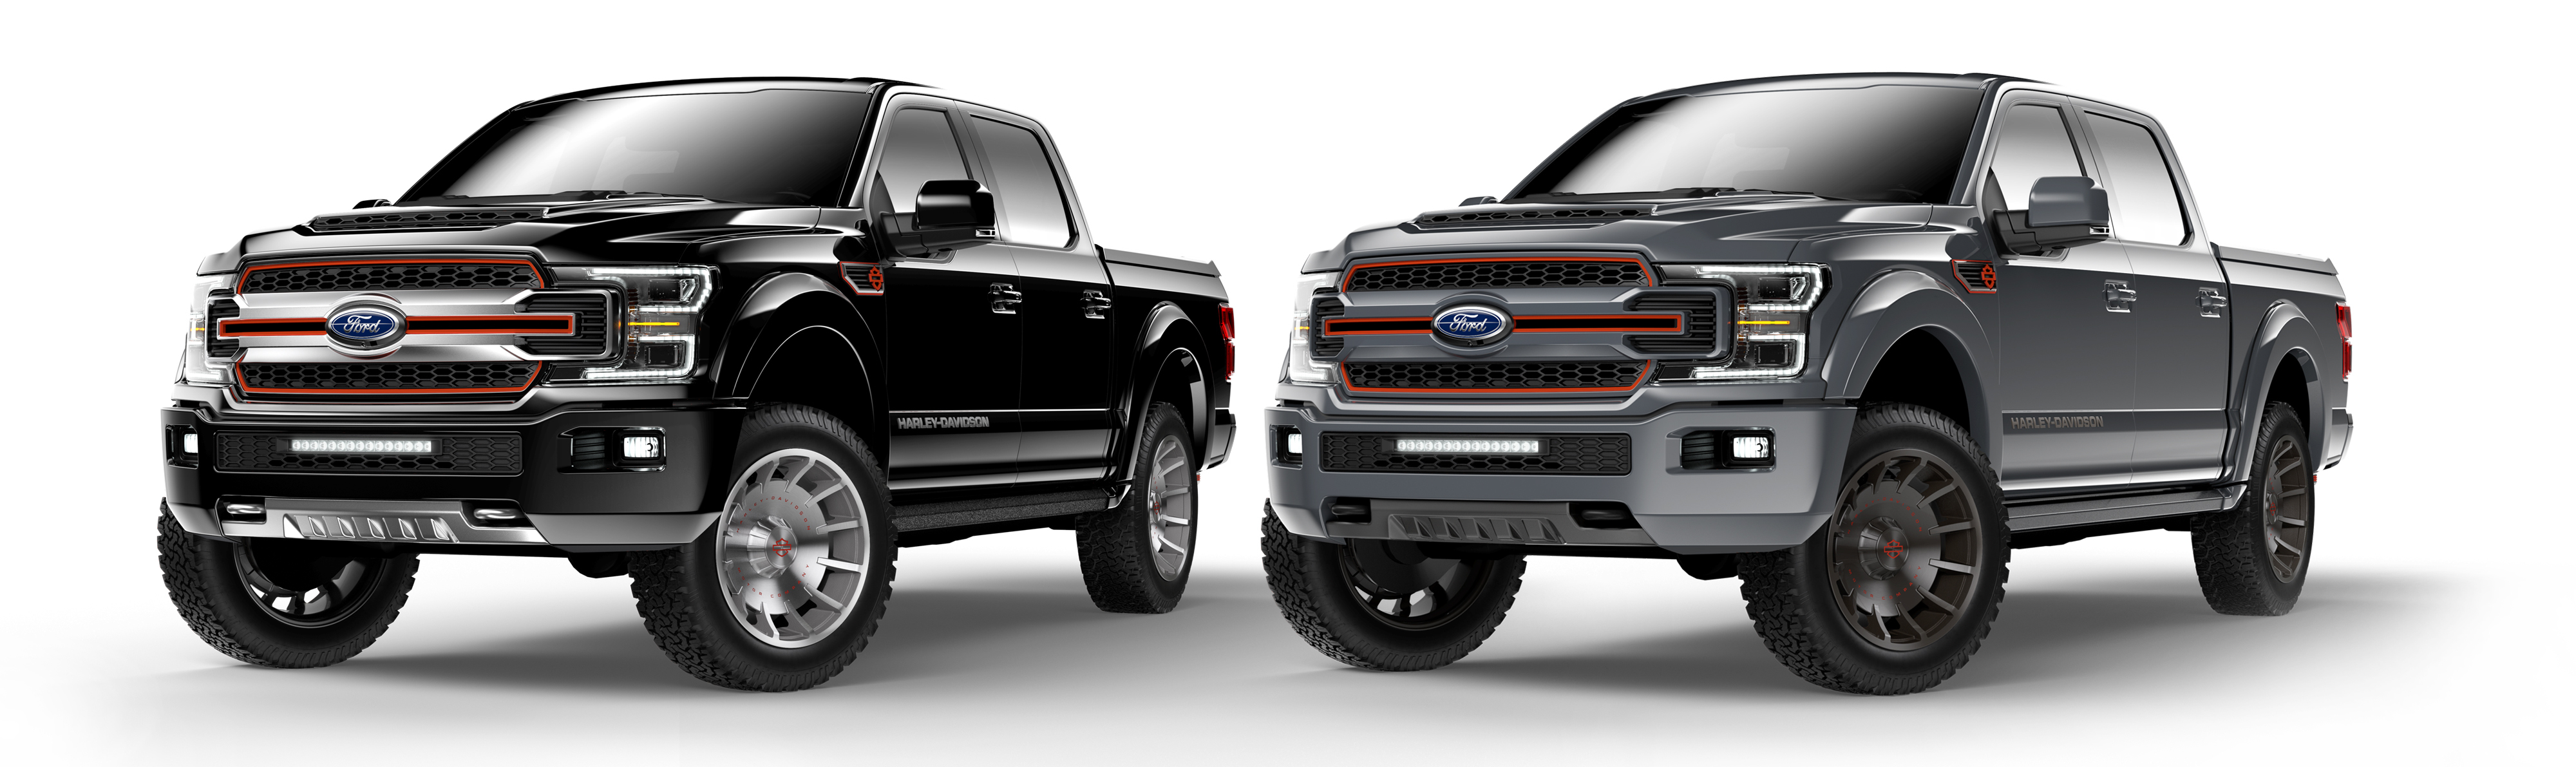 Harley Davidson And Tuscany Motor Co Unveil Concept Custom Pickup Truck At 115th Anniversary Celebration Business Wire